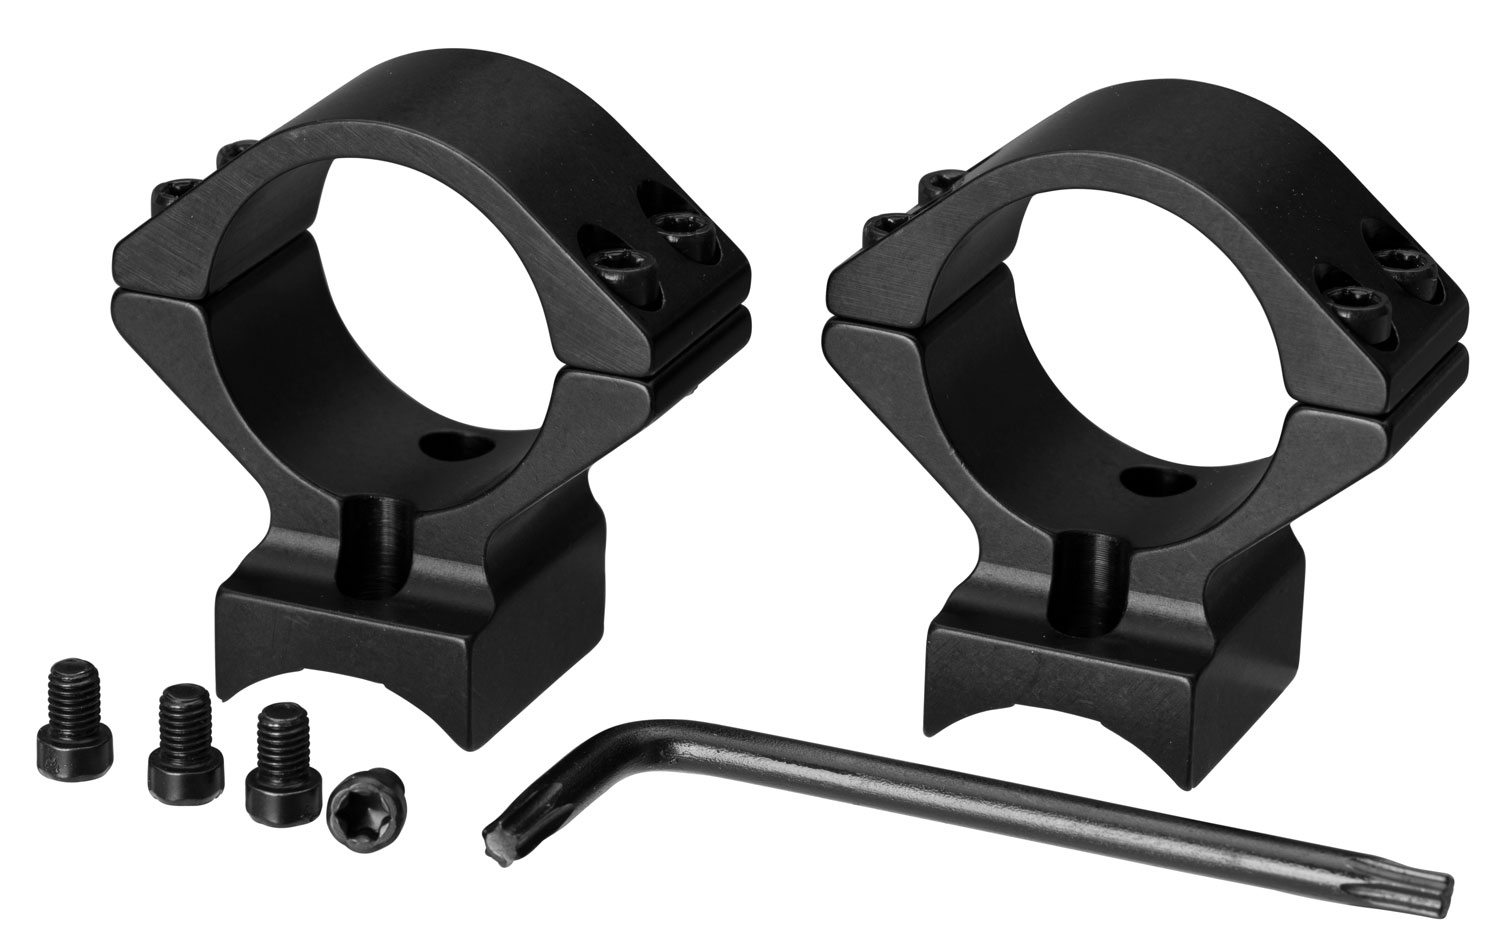 Browning 12338 2-Piece Base/Rings For Browning T-Bolt Integral Mounting System Style Black Matte Finish Low